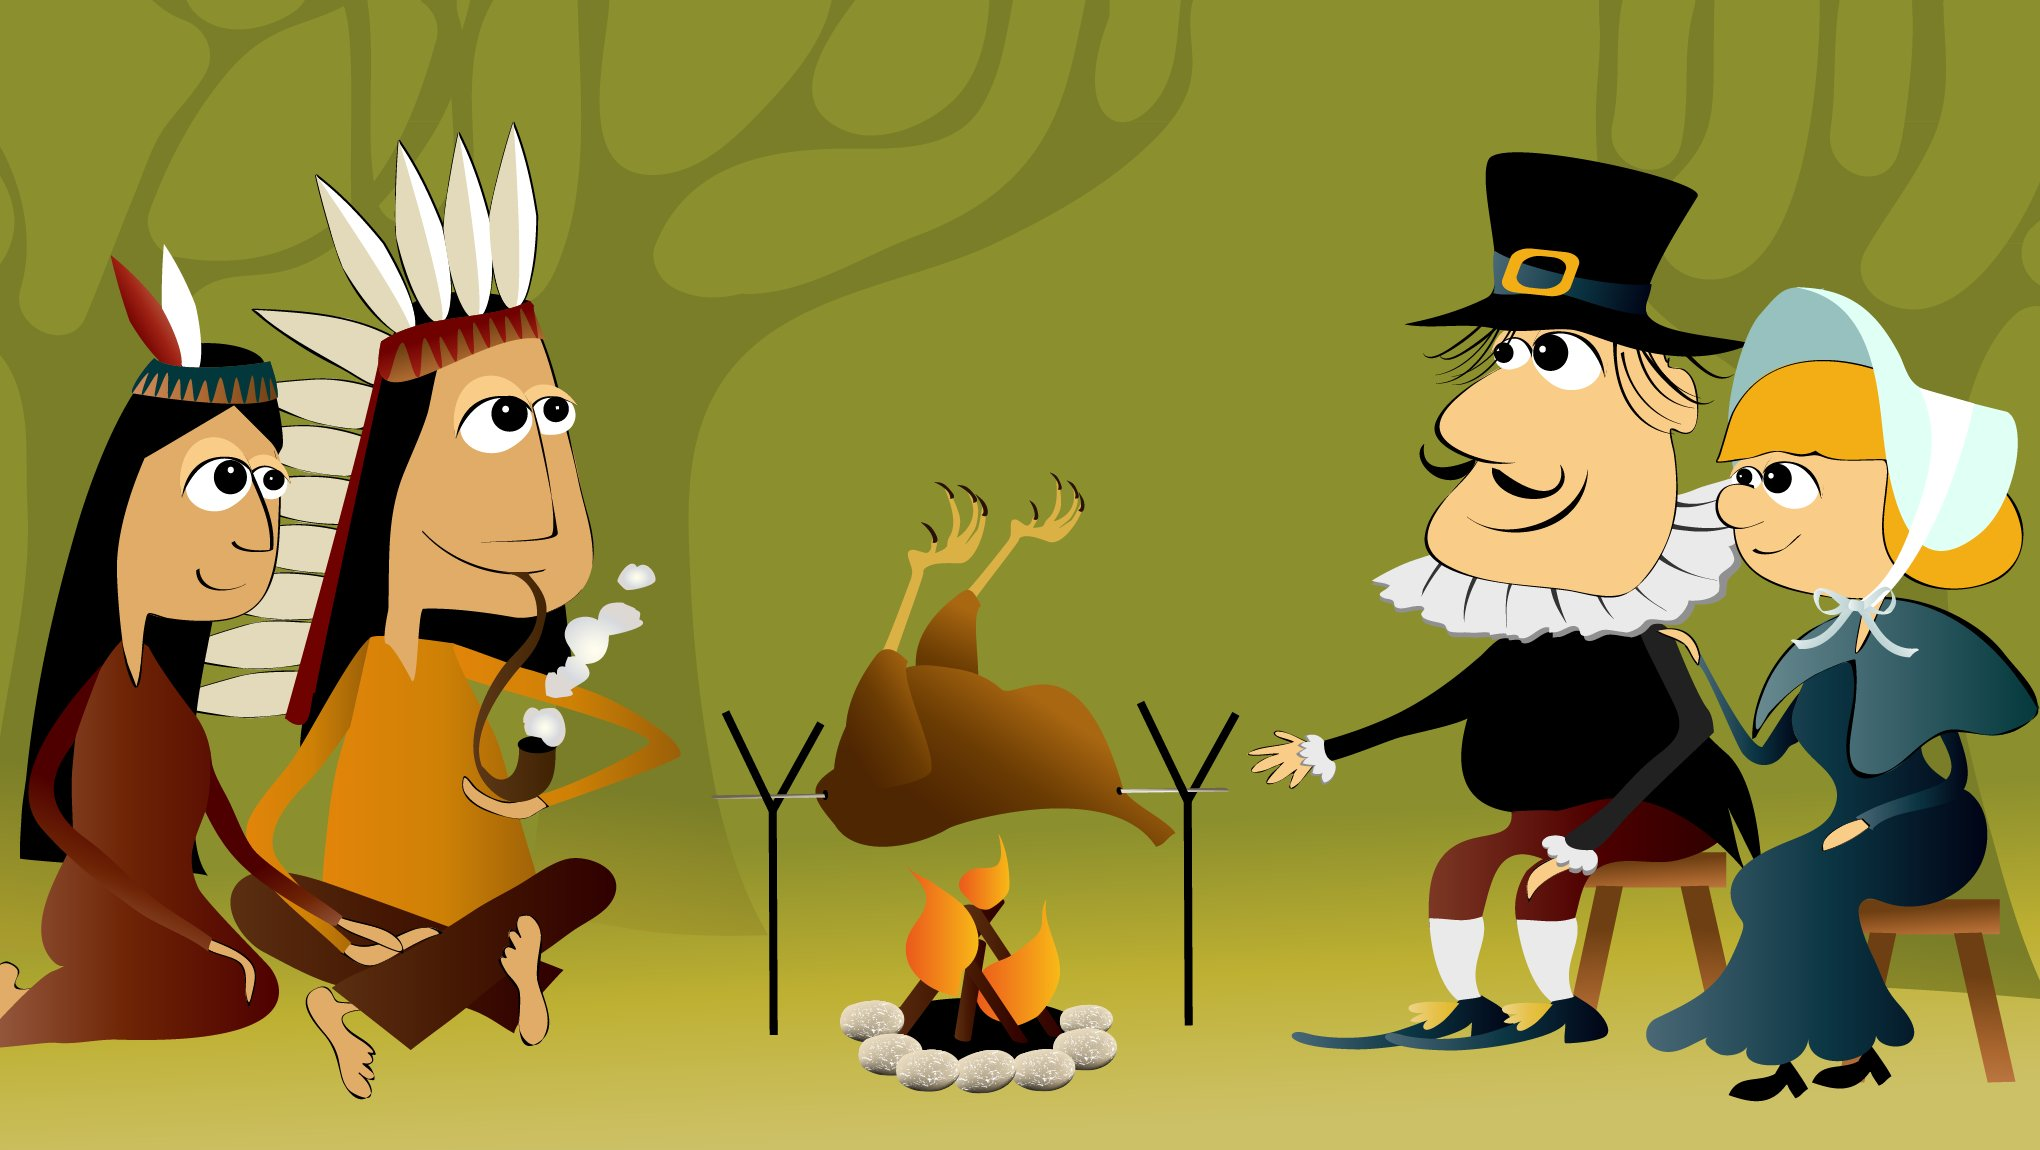 Thanksgiving is a celebration of friendship between Native Americans and the Pilgrims who came to America from Europe.